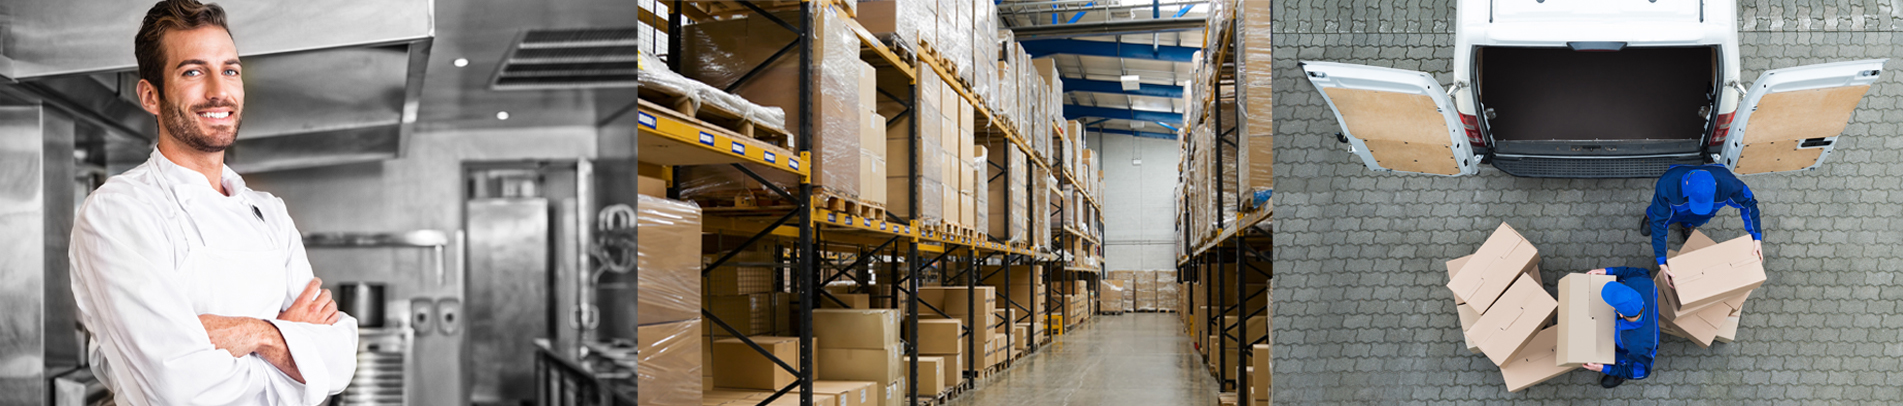 Restaurant Supply Unlimited's dedicated team delivering restaurant supplies to local chefs, from warehouse to chef.